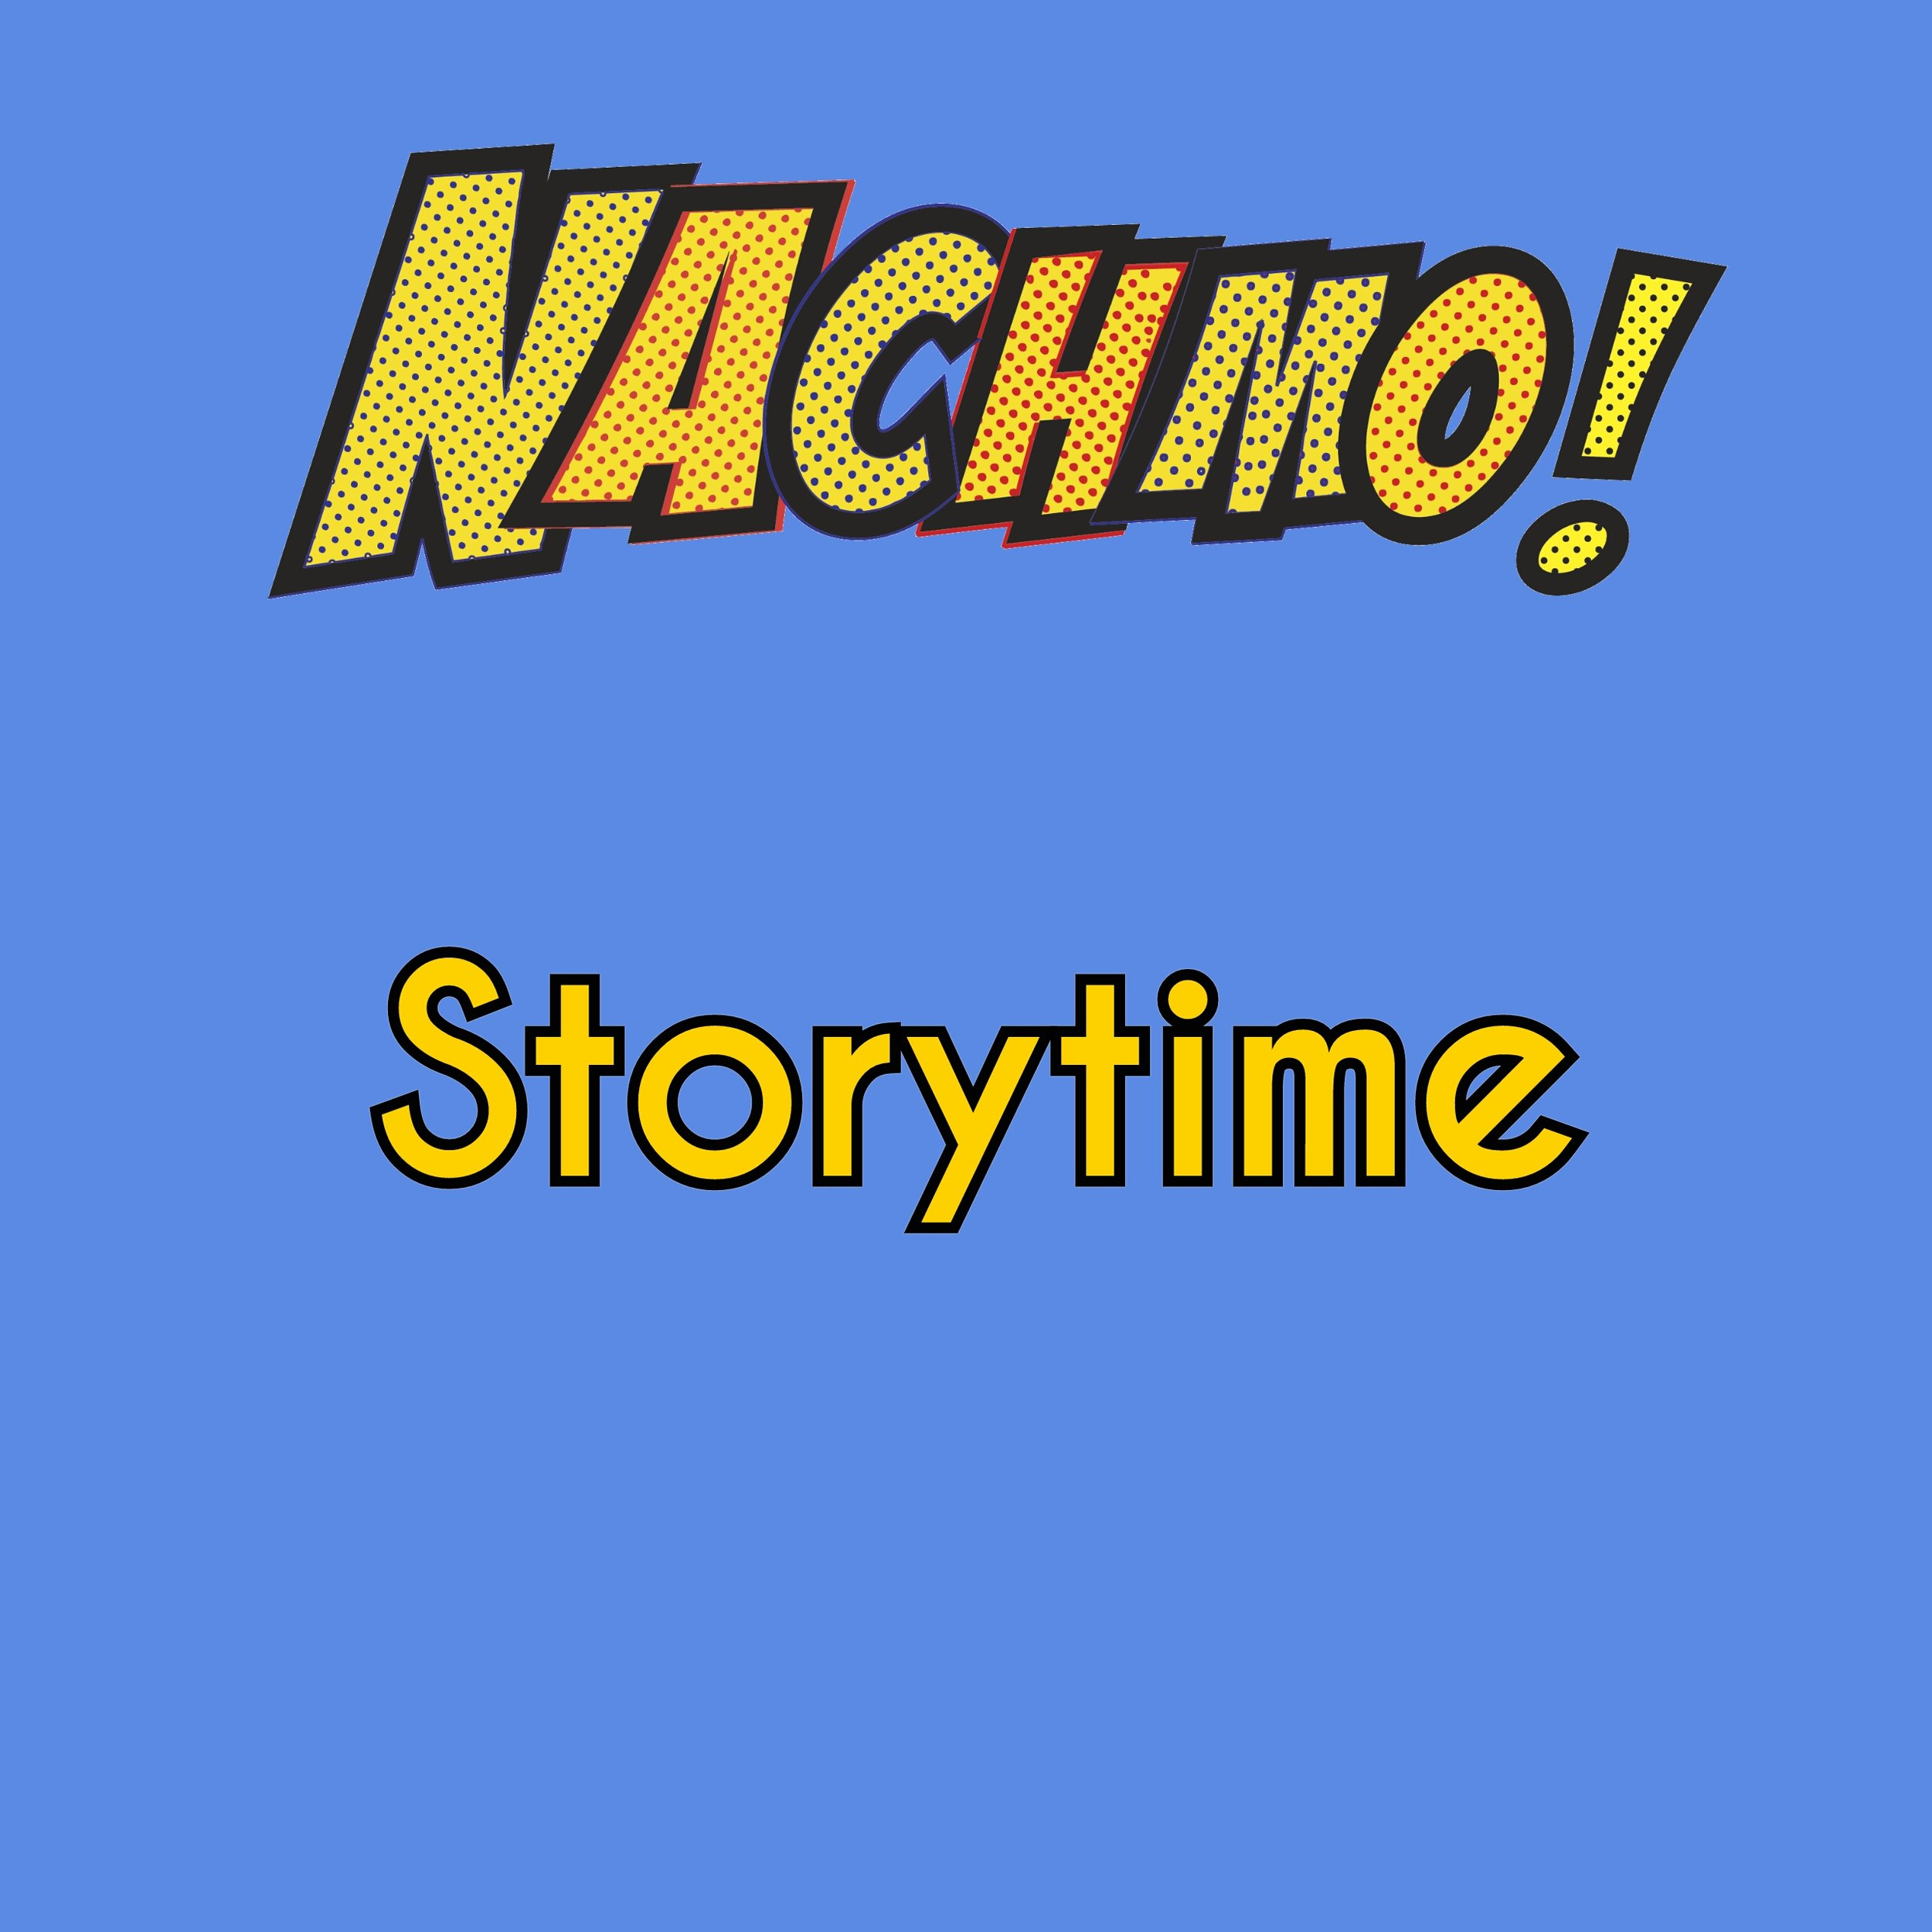 Jan 4: Storytime - Prompt: Find a narrative using a story that inspires you: a situation you saw on the subway, a favorite episode of TV show, a memory you have, etc. Then extract its essence, and dance it.Plus: Make it into a one-minute phrase. Call this phrase C.Lens: Make a storyboard of this narrative. Here is a sample printout you can use.